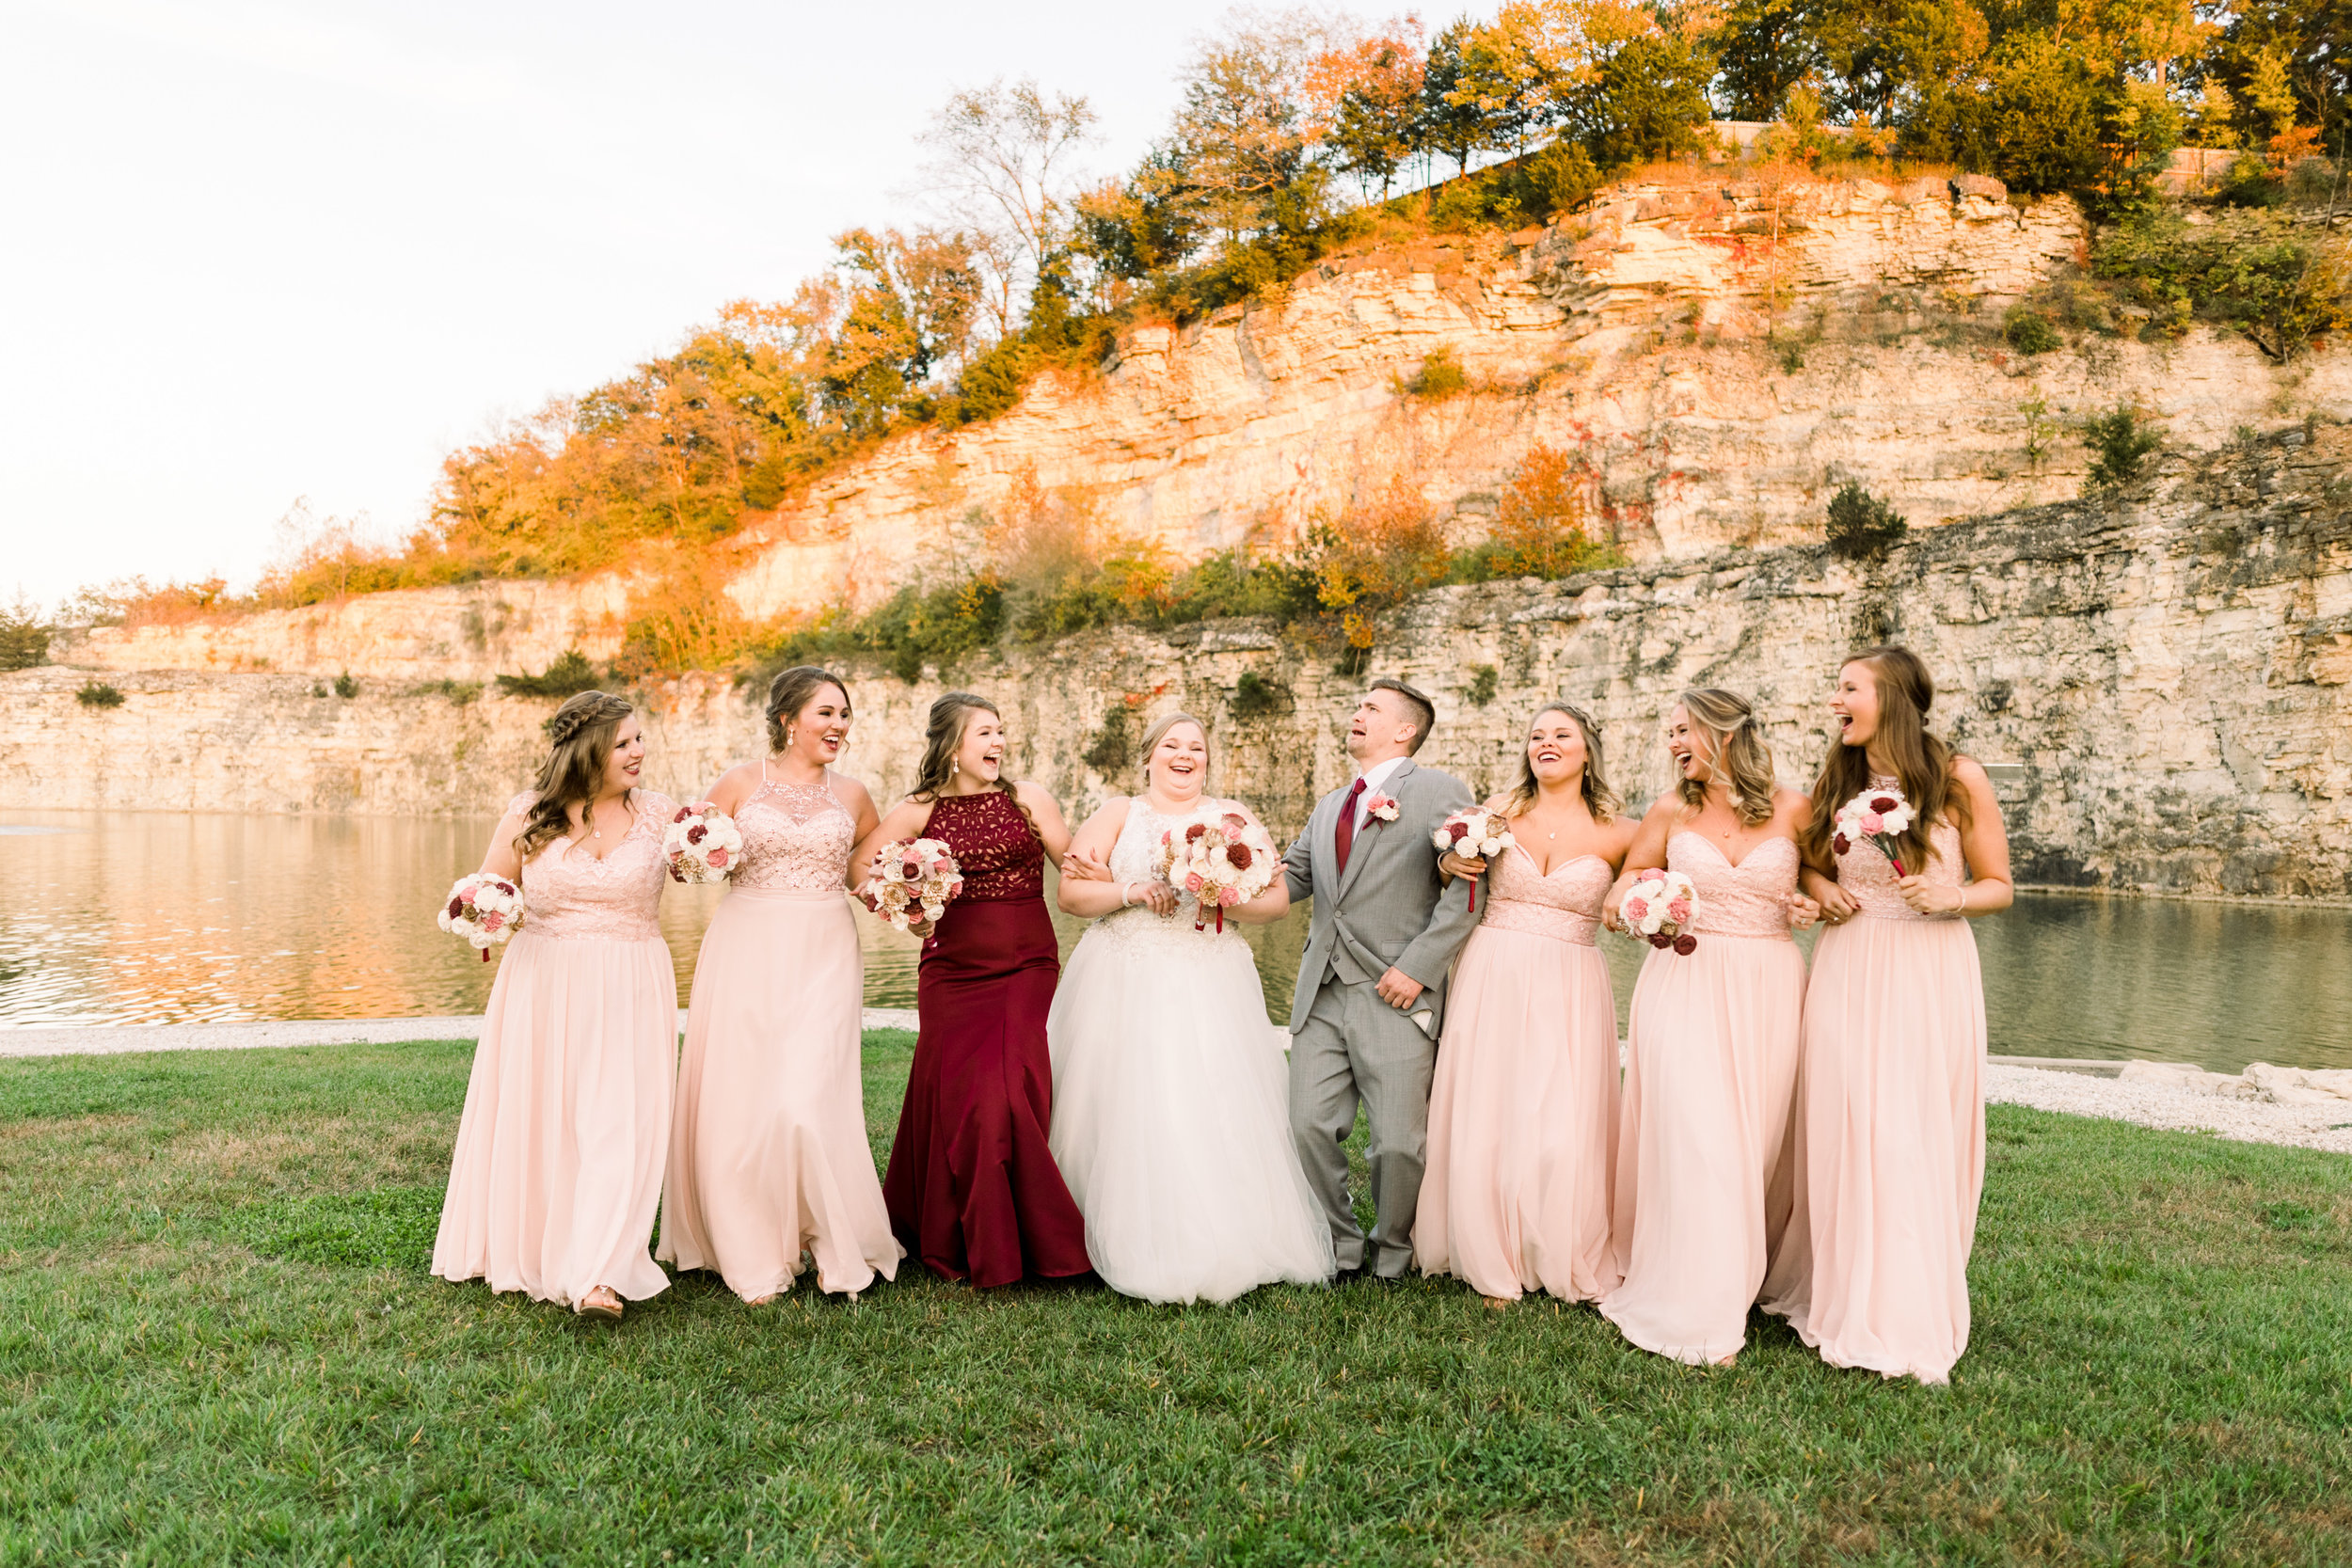 Savanah + Jared (559 of 972).jpg